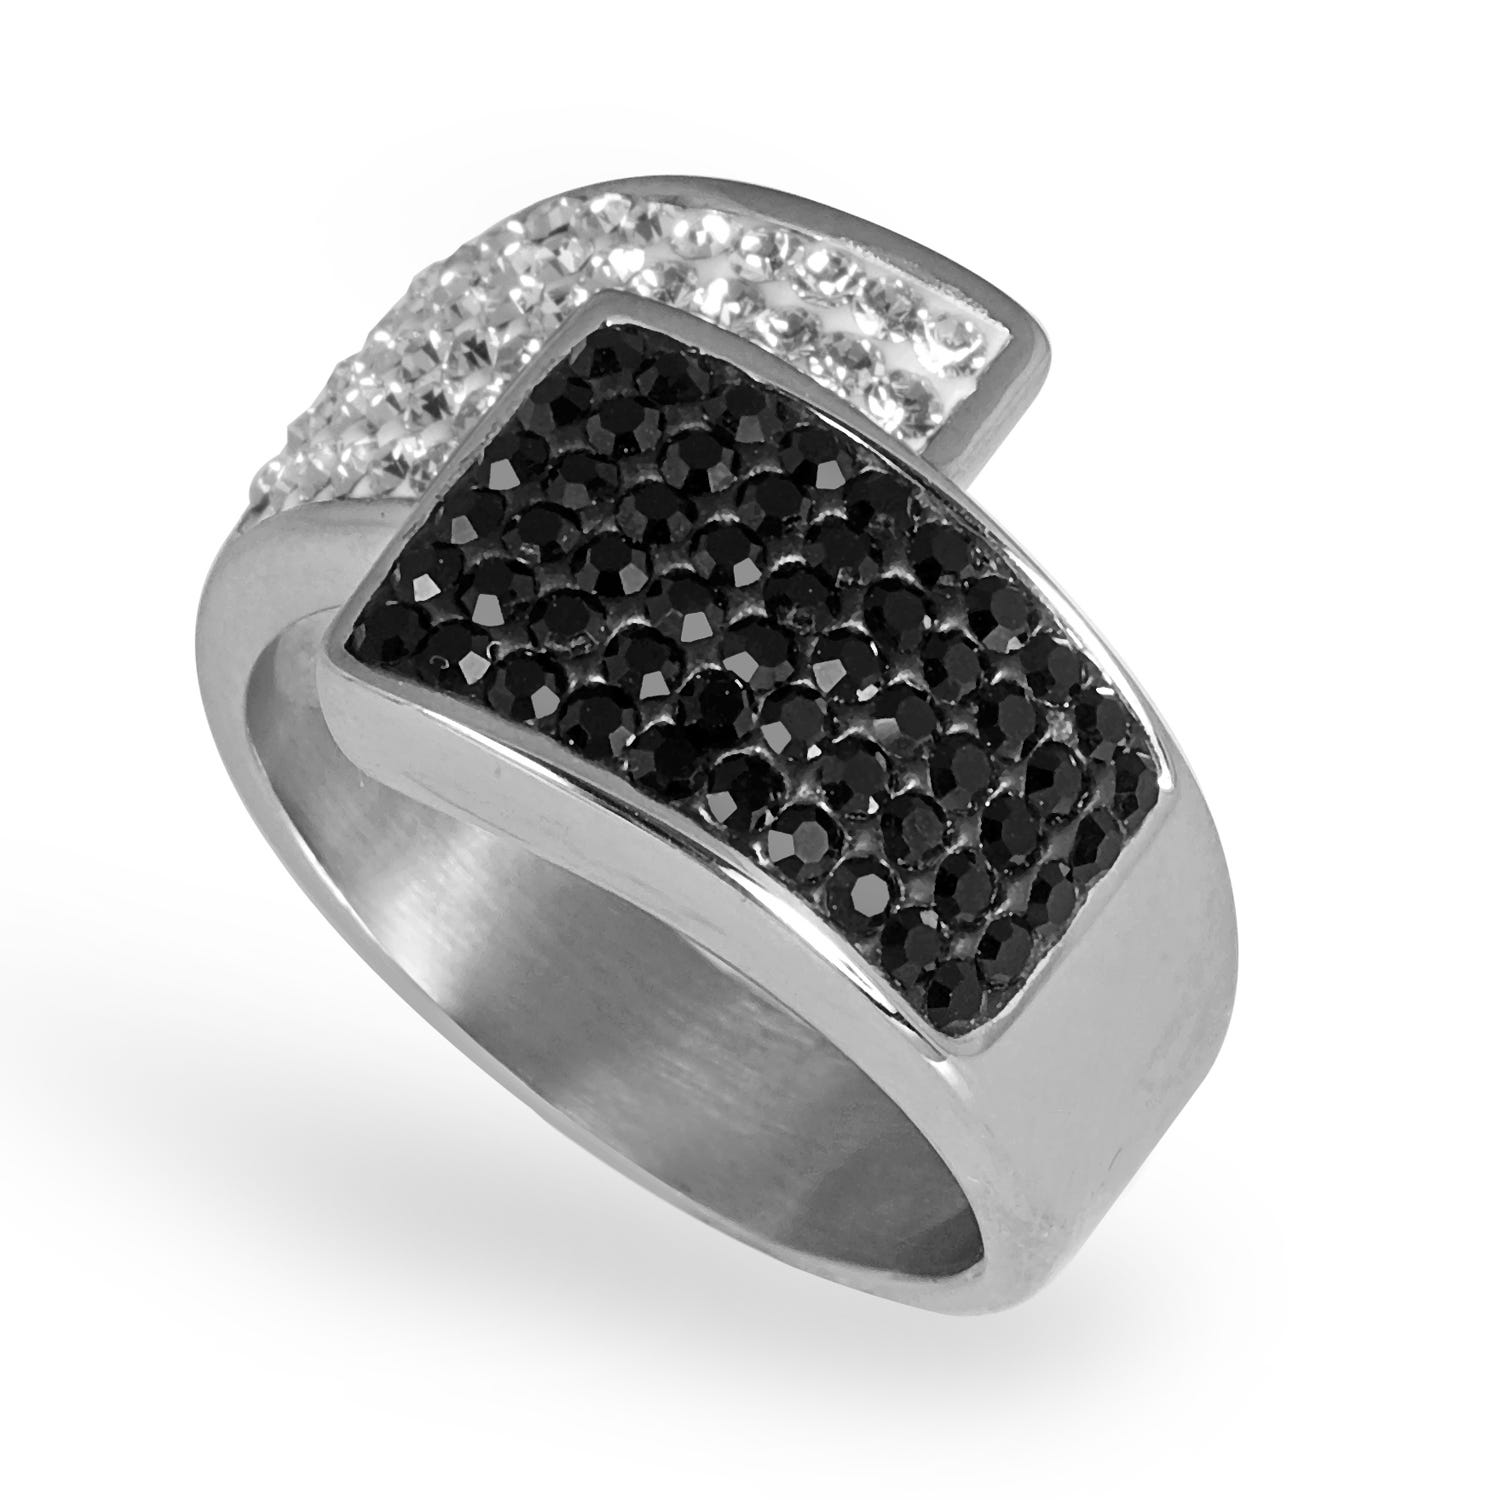 Ladies Cry & Jet Black Crystal Fashion Ring in Stainless Steel